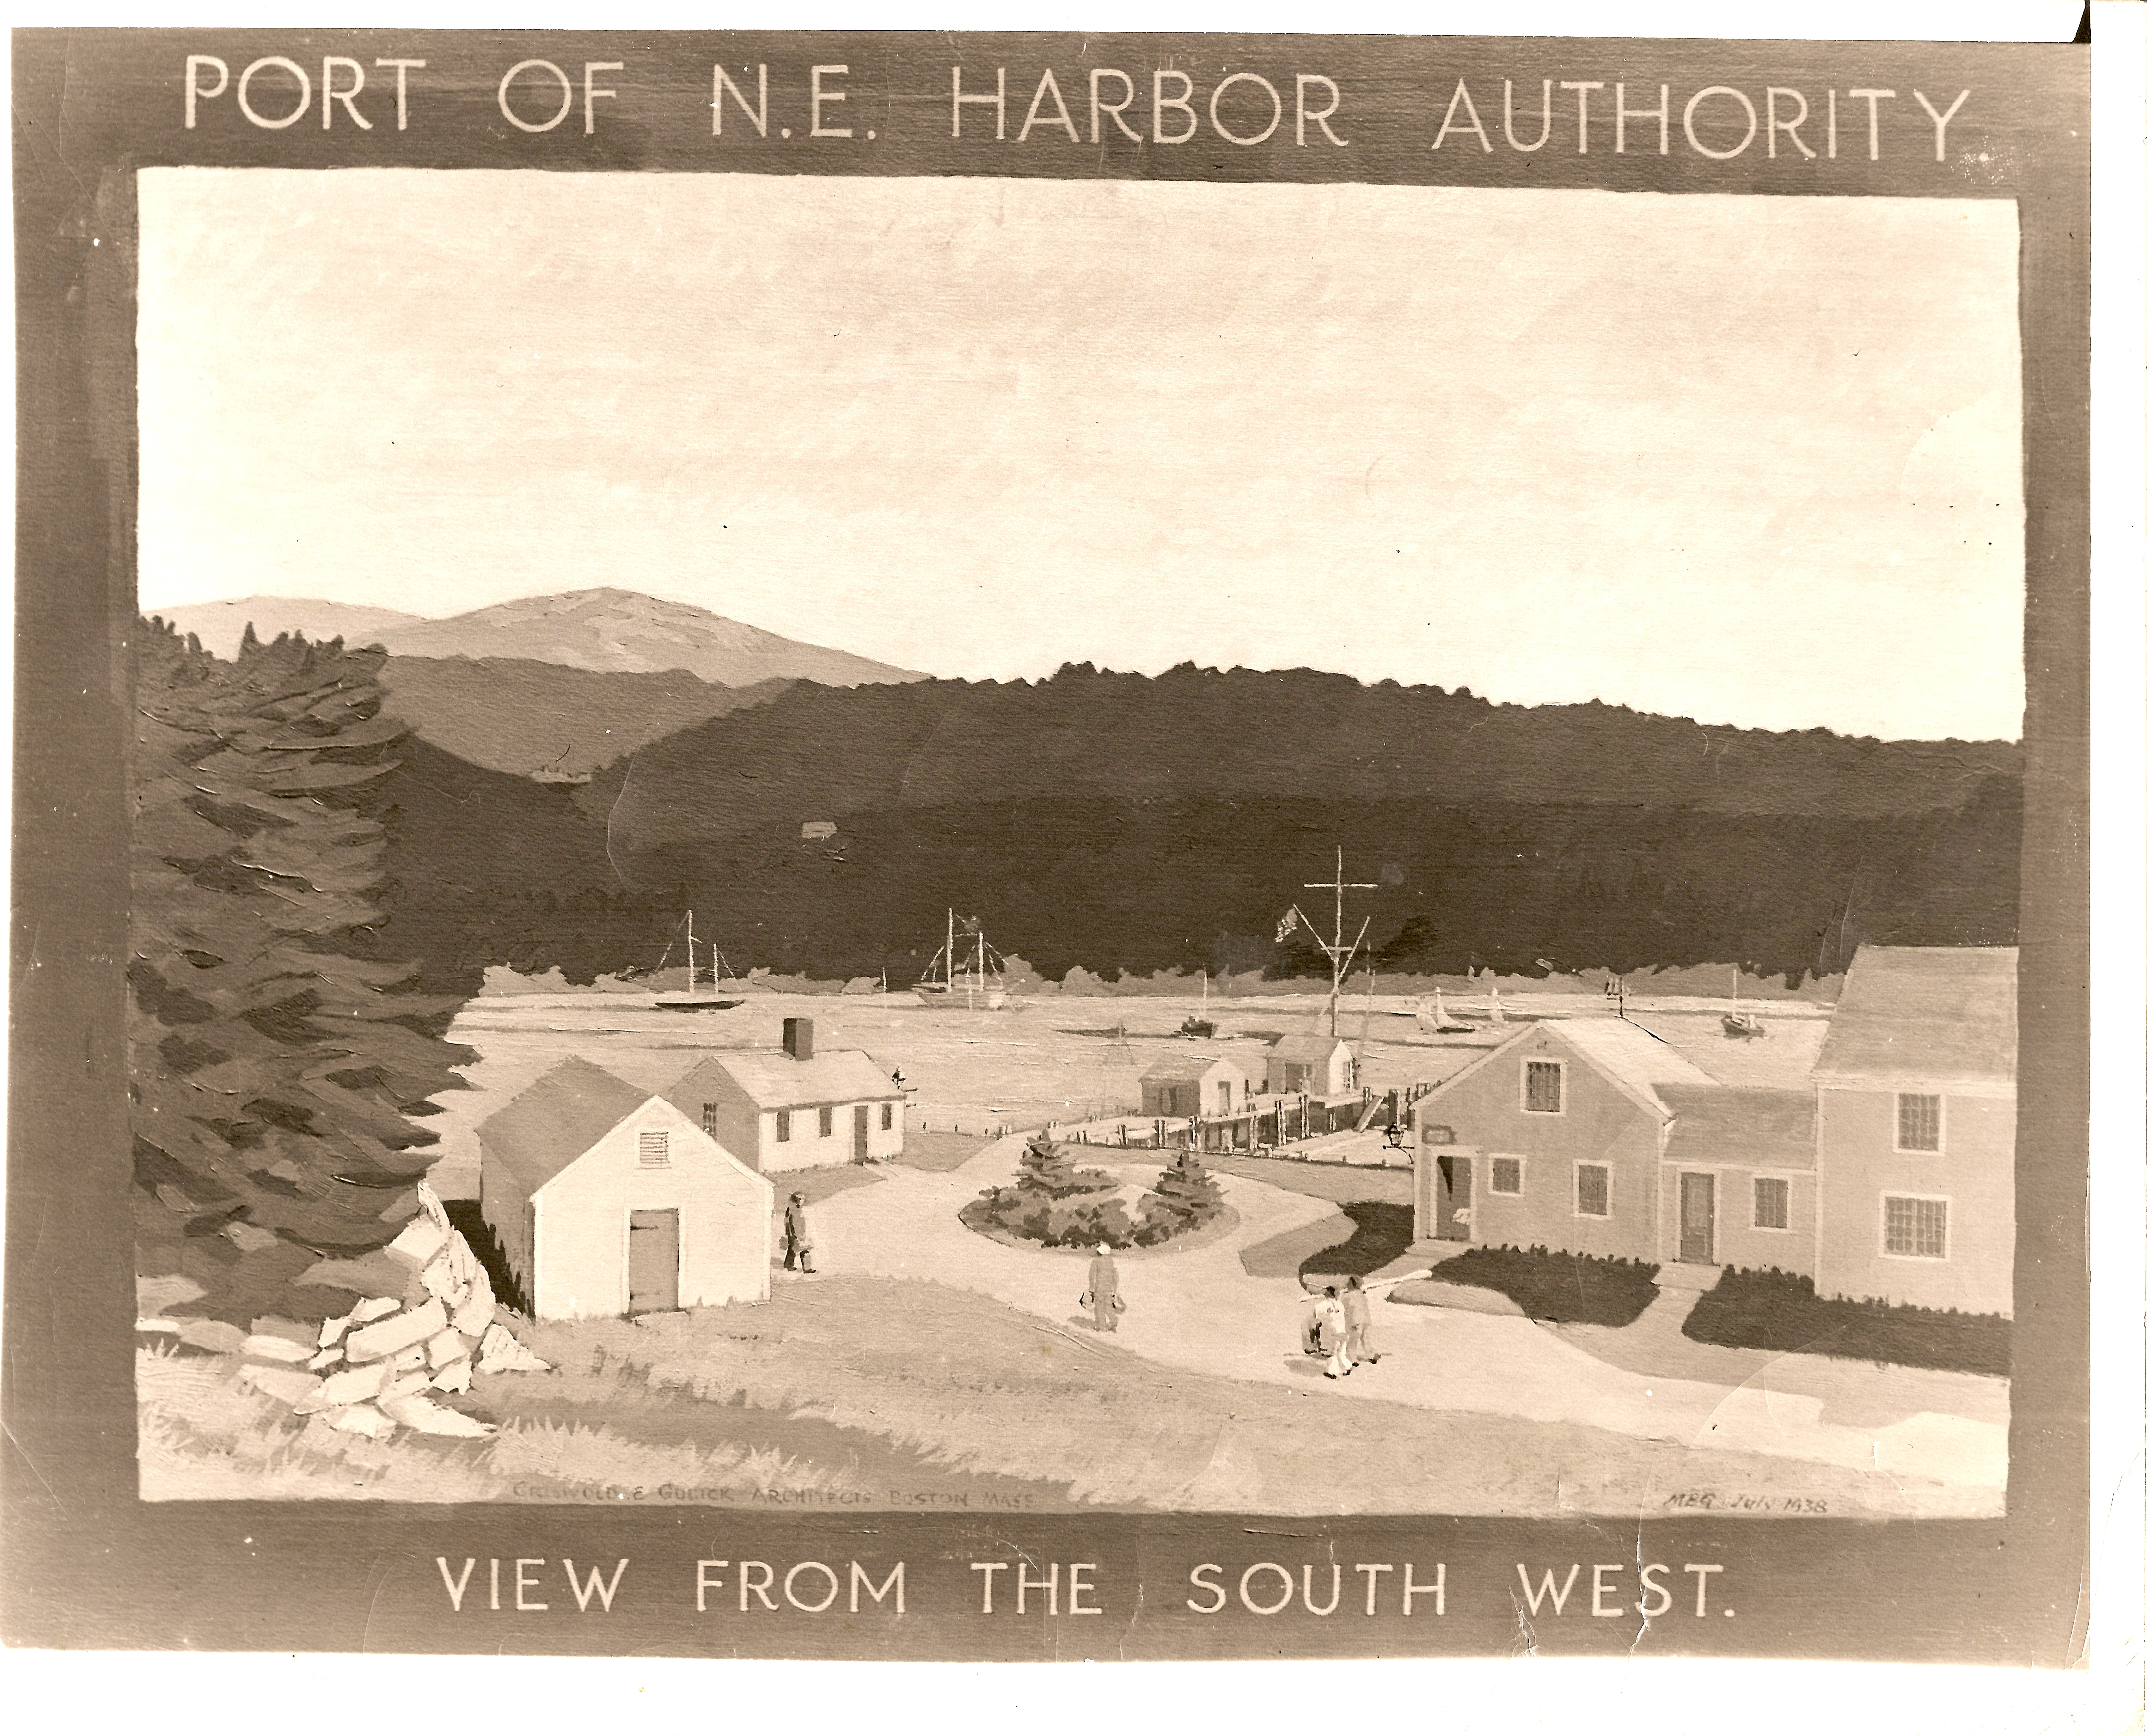 N.E. Harbor Authority, View from South West